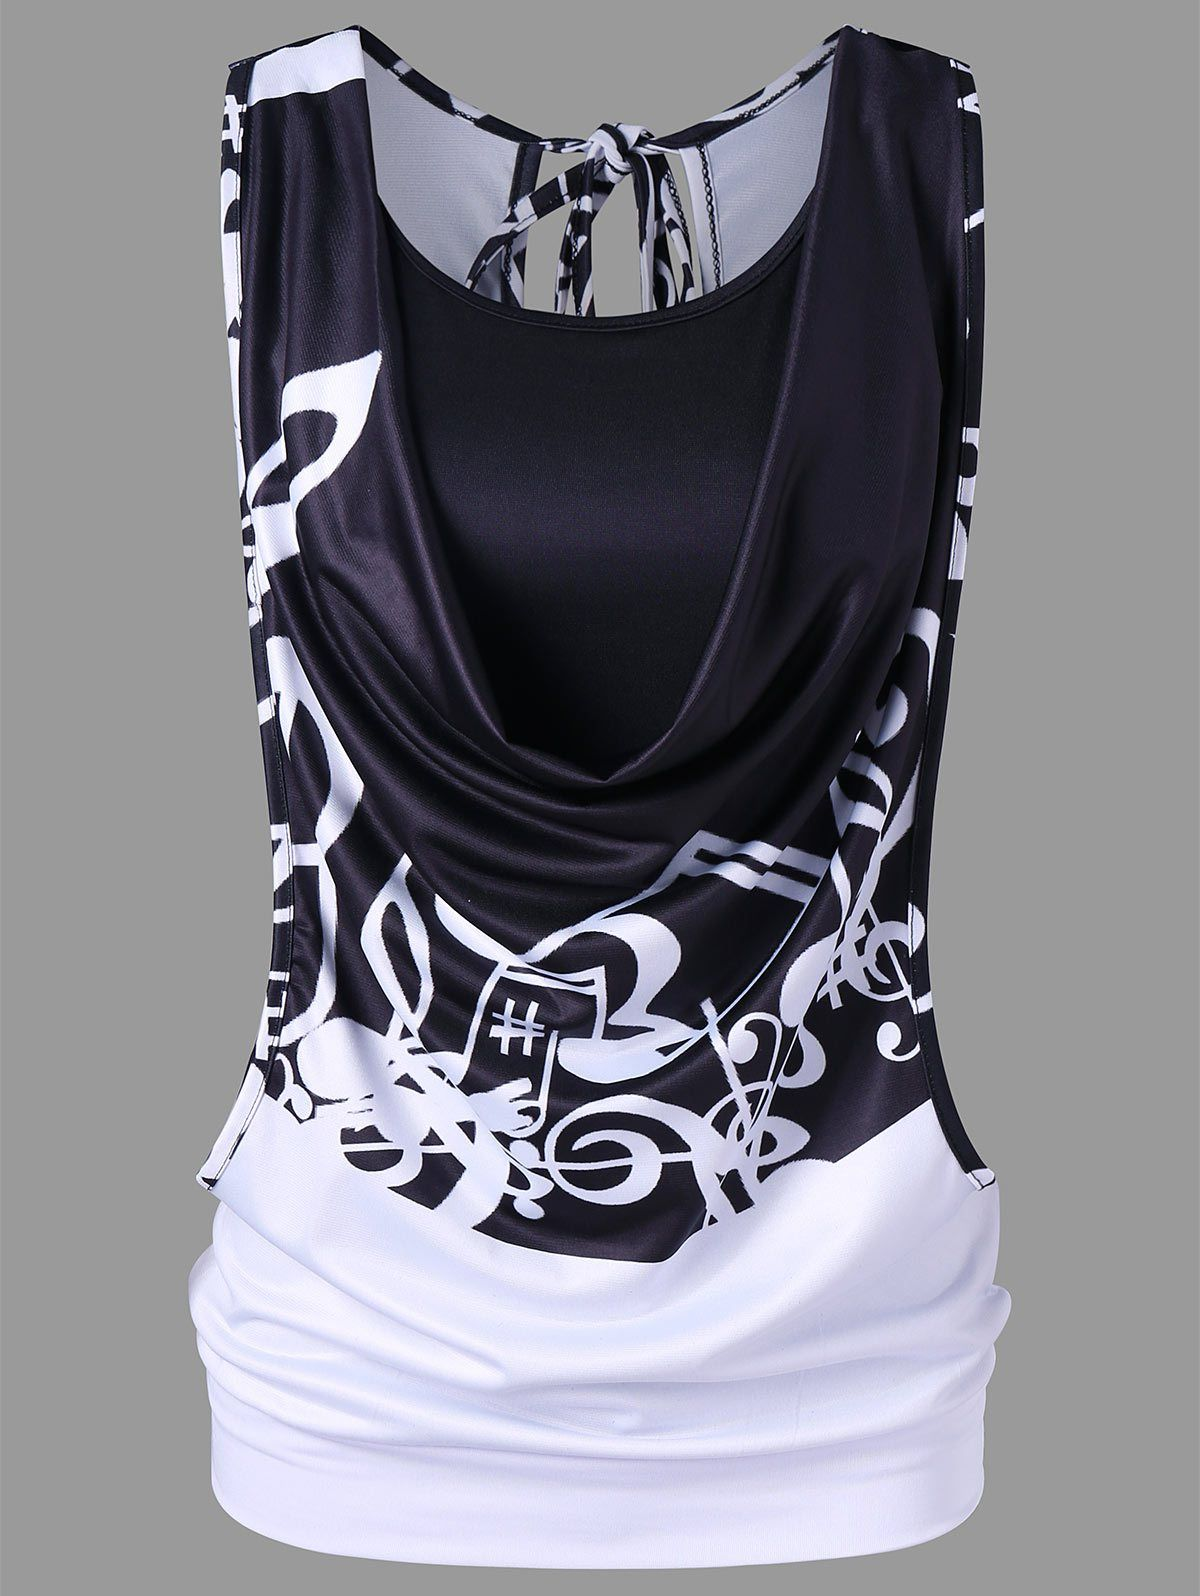 ae1a3bce8ad Gamiss Fashion Music Note Printed Tank Top With Camisole Women Tank Tops  Causal Sleeveless Vest Cropped Feminino M-2XL